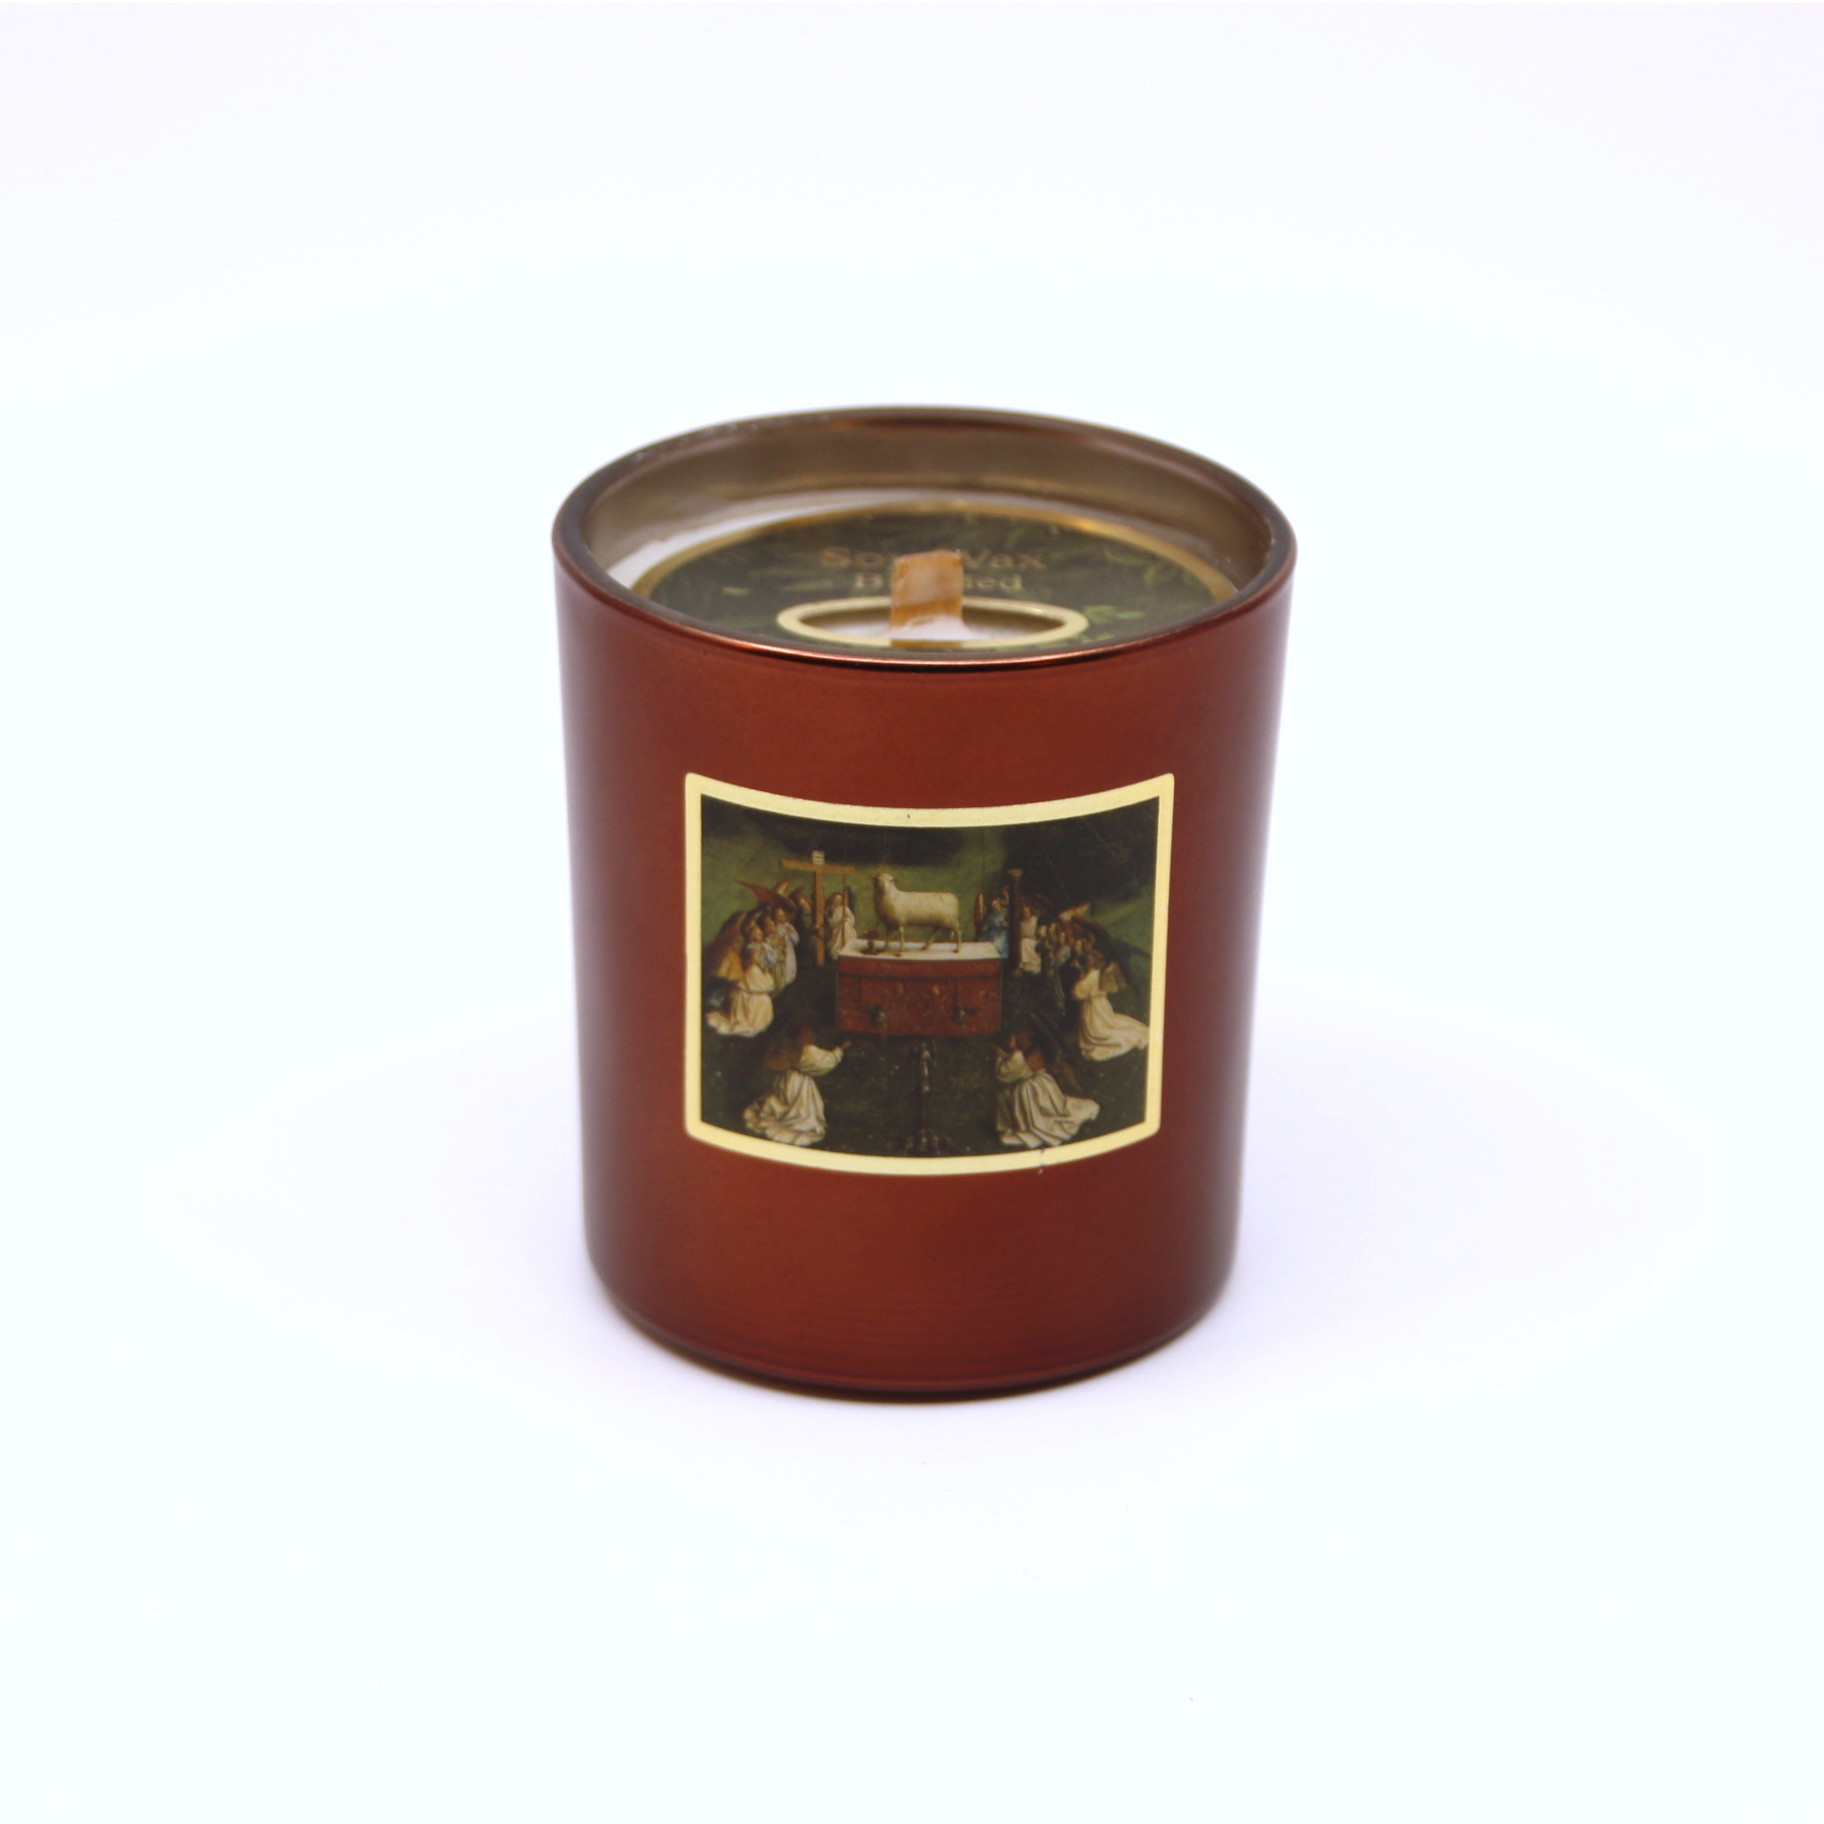 Sint-Baafskathedraal Scented Candle - large